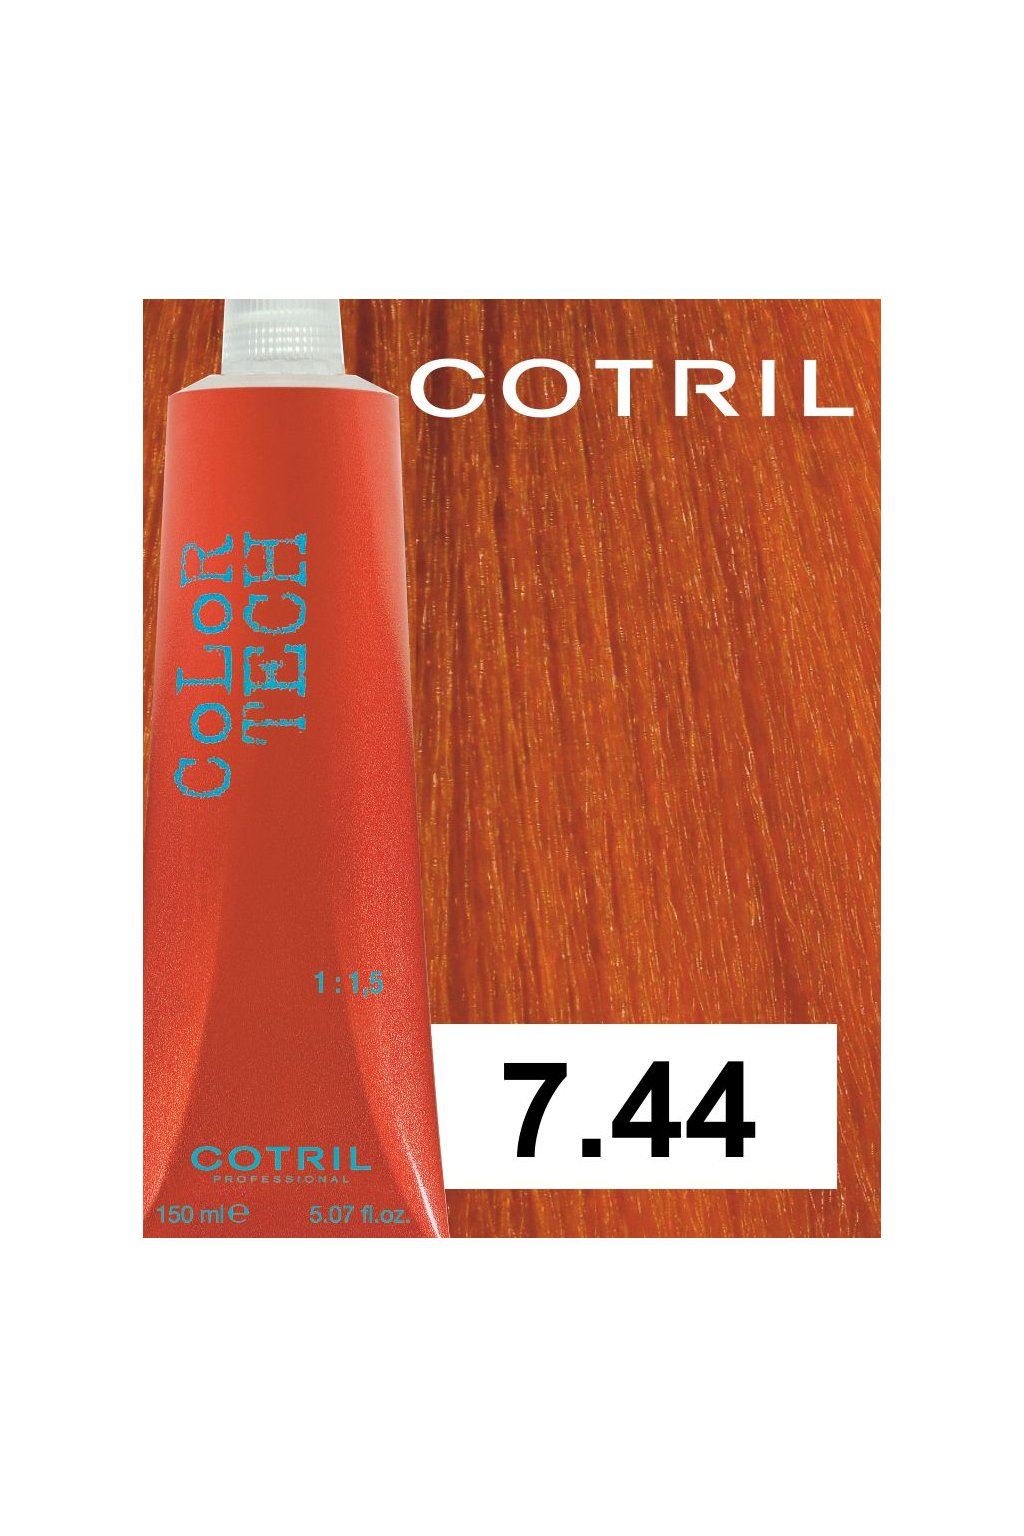 7 44 ct cotril